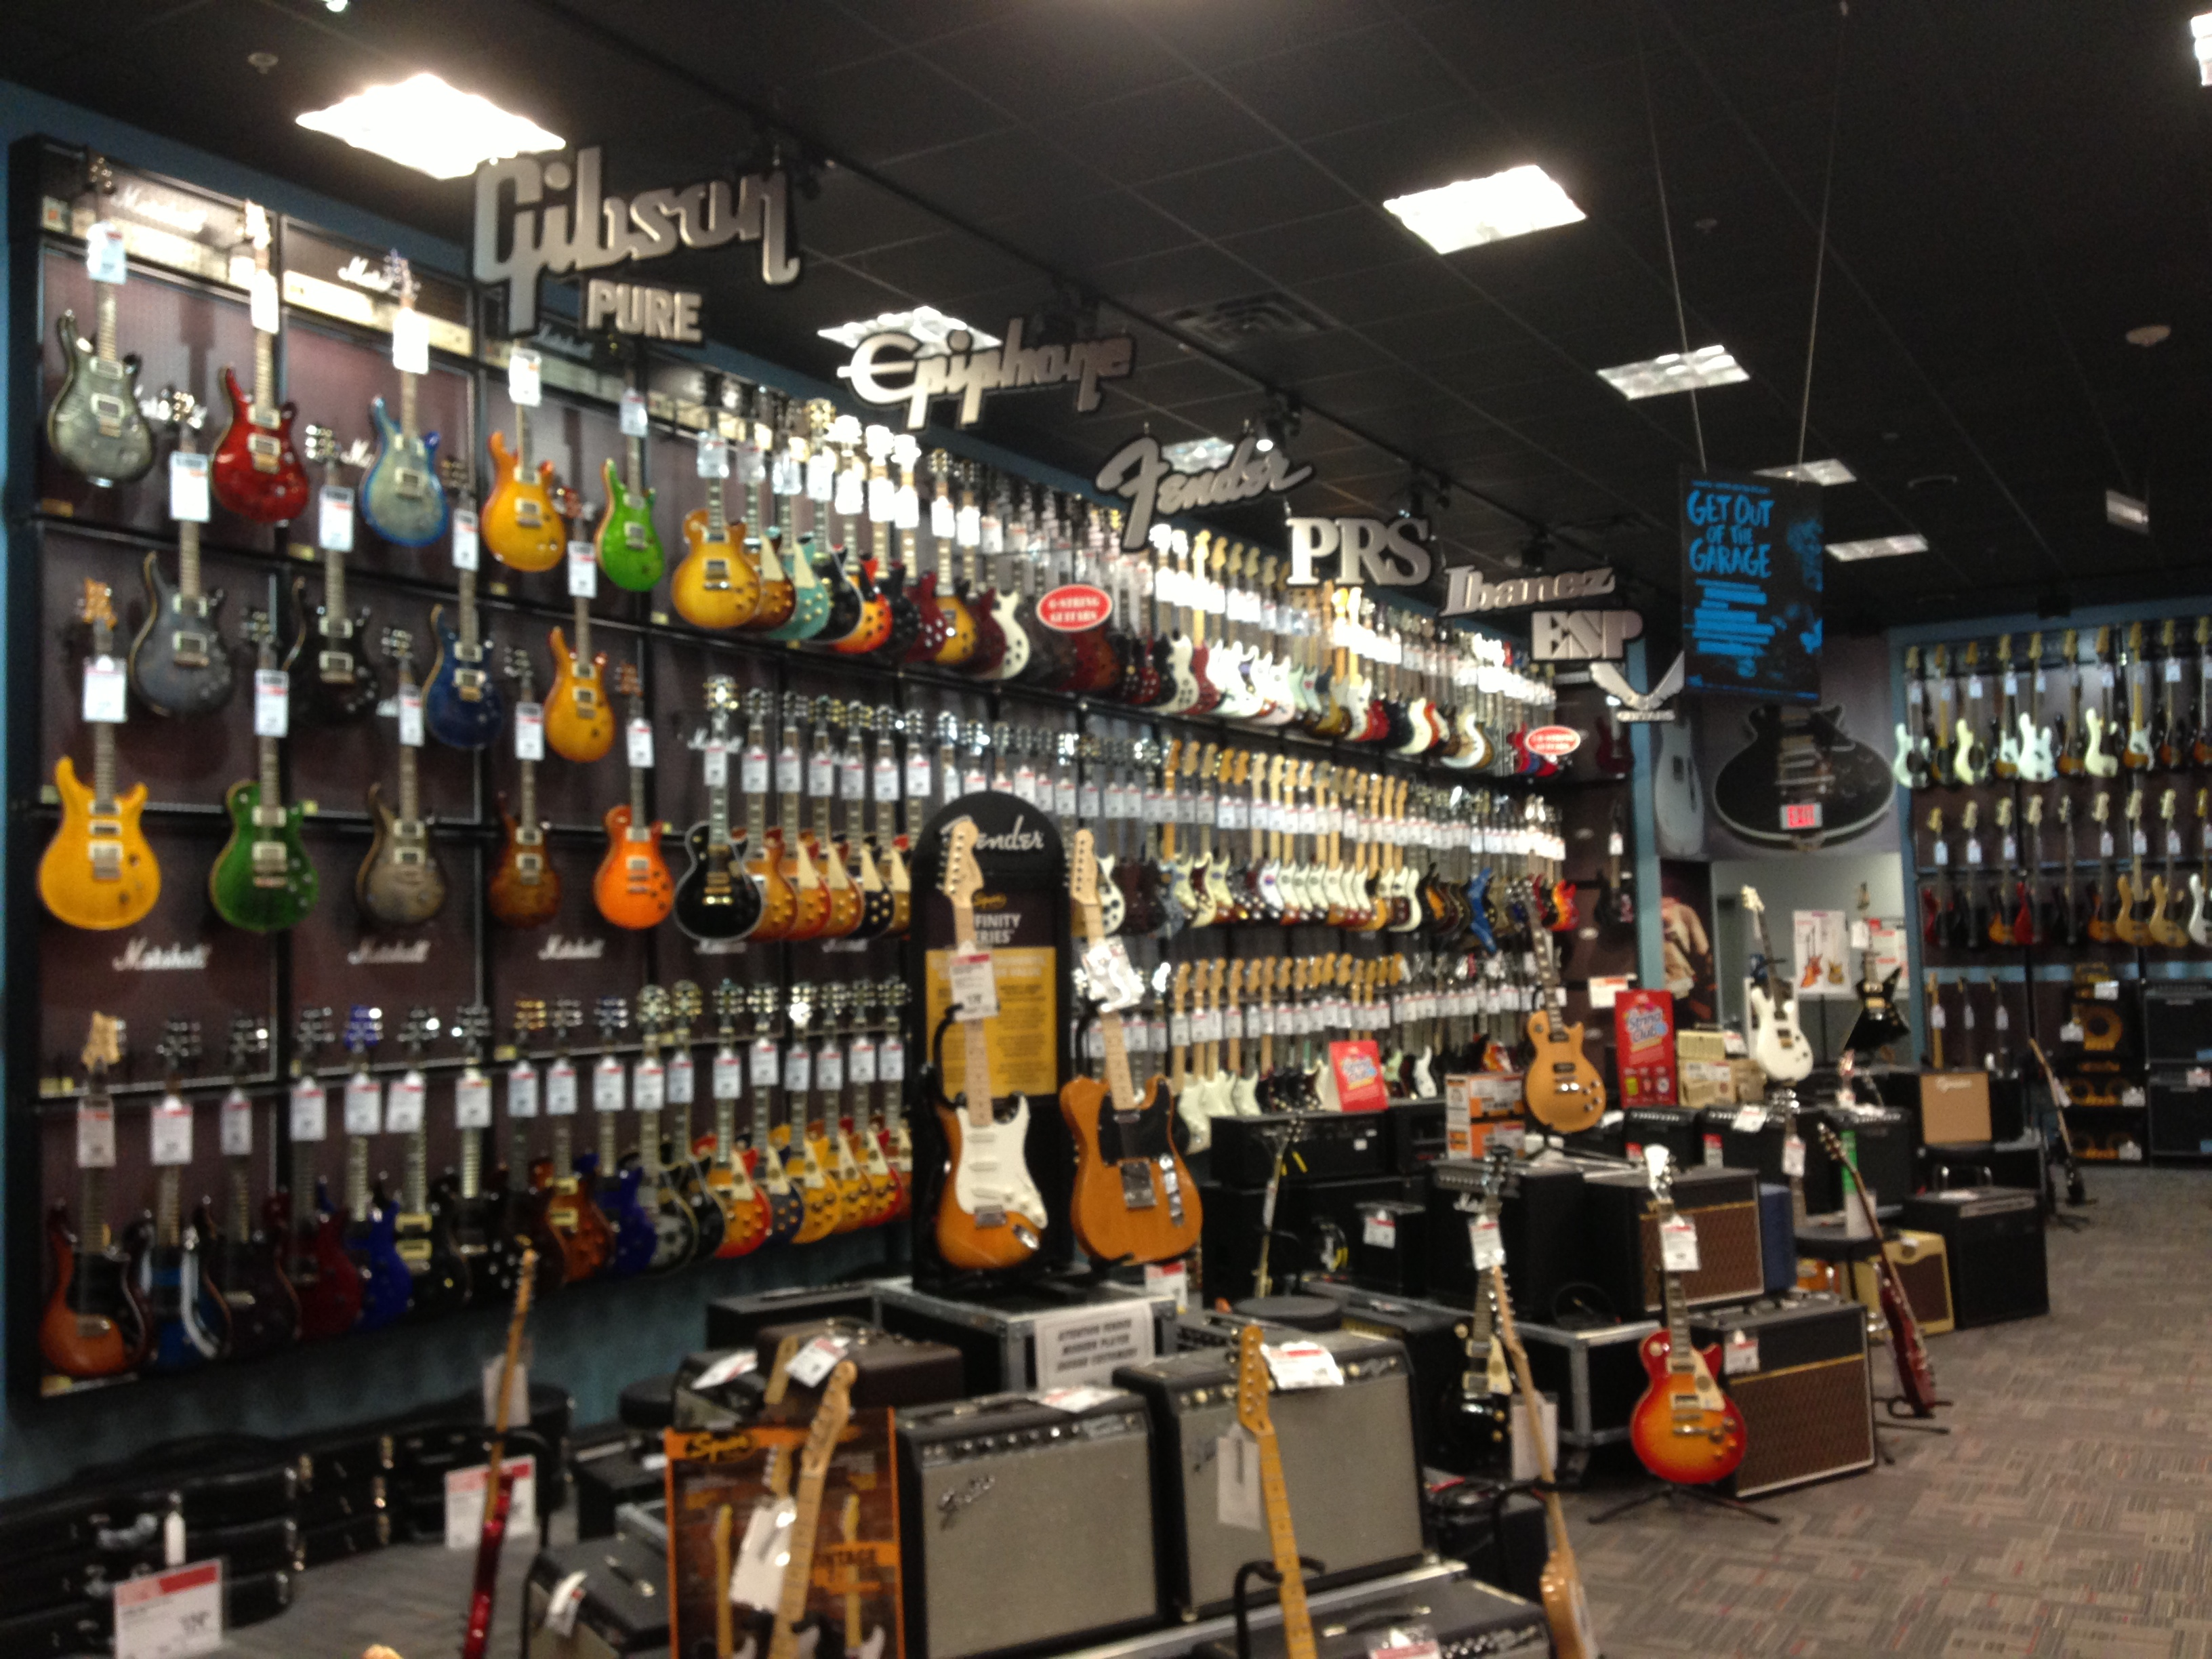 Guitar Center Lessons image 8